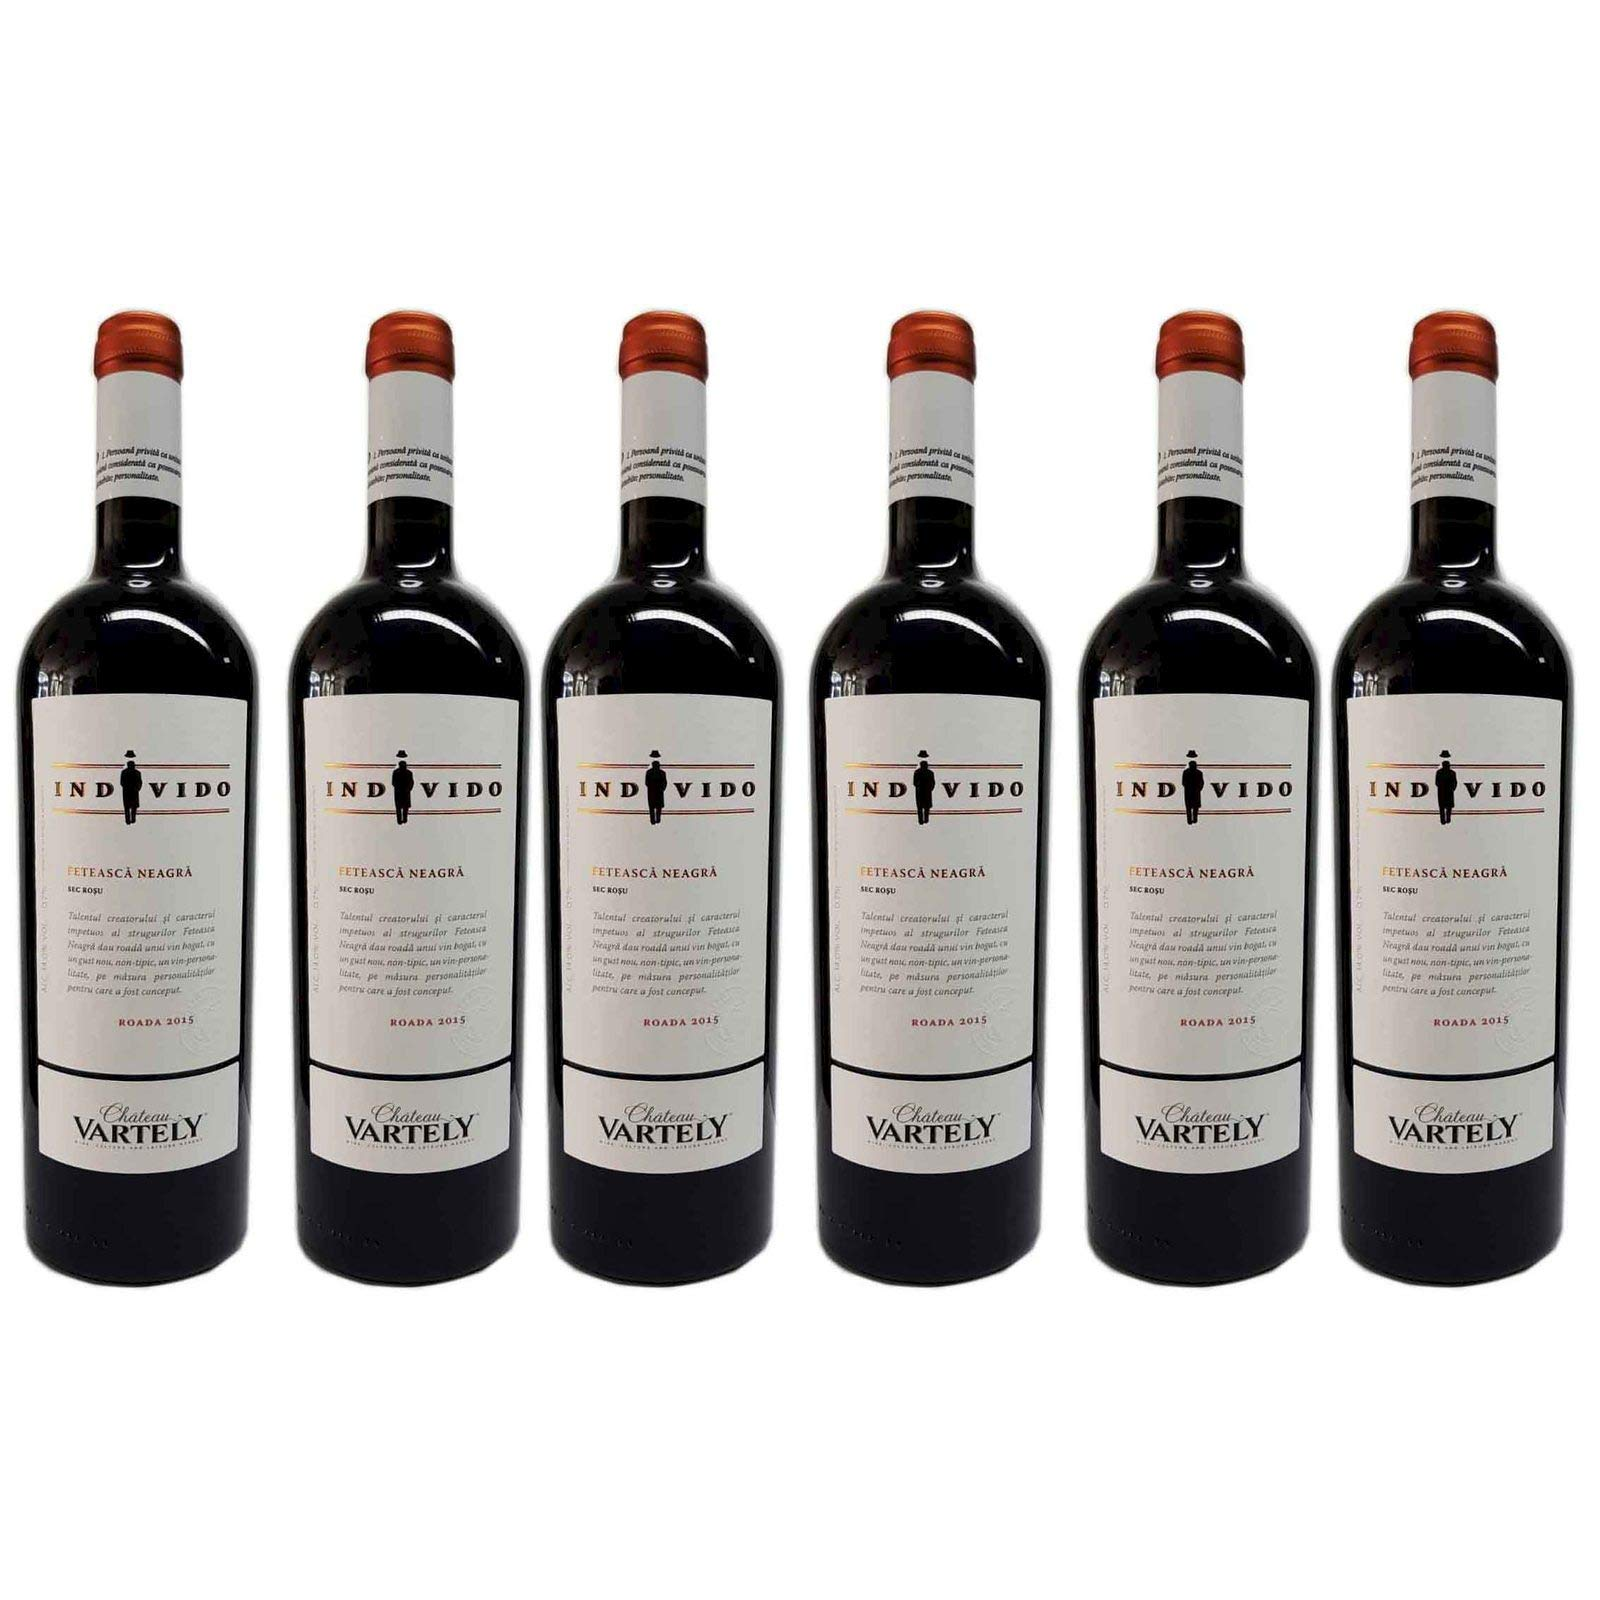 6x INDIVIDO red wine Feteasca Neagra from Chateau Vartely 0.75l 14% alcohol vintage 2015 from Moldova